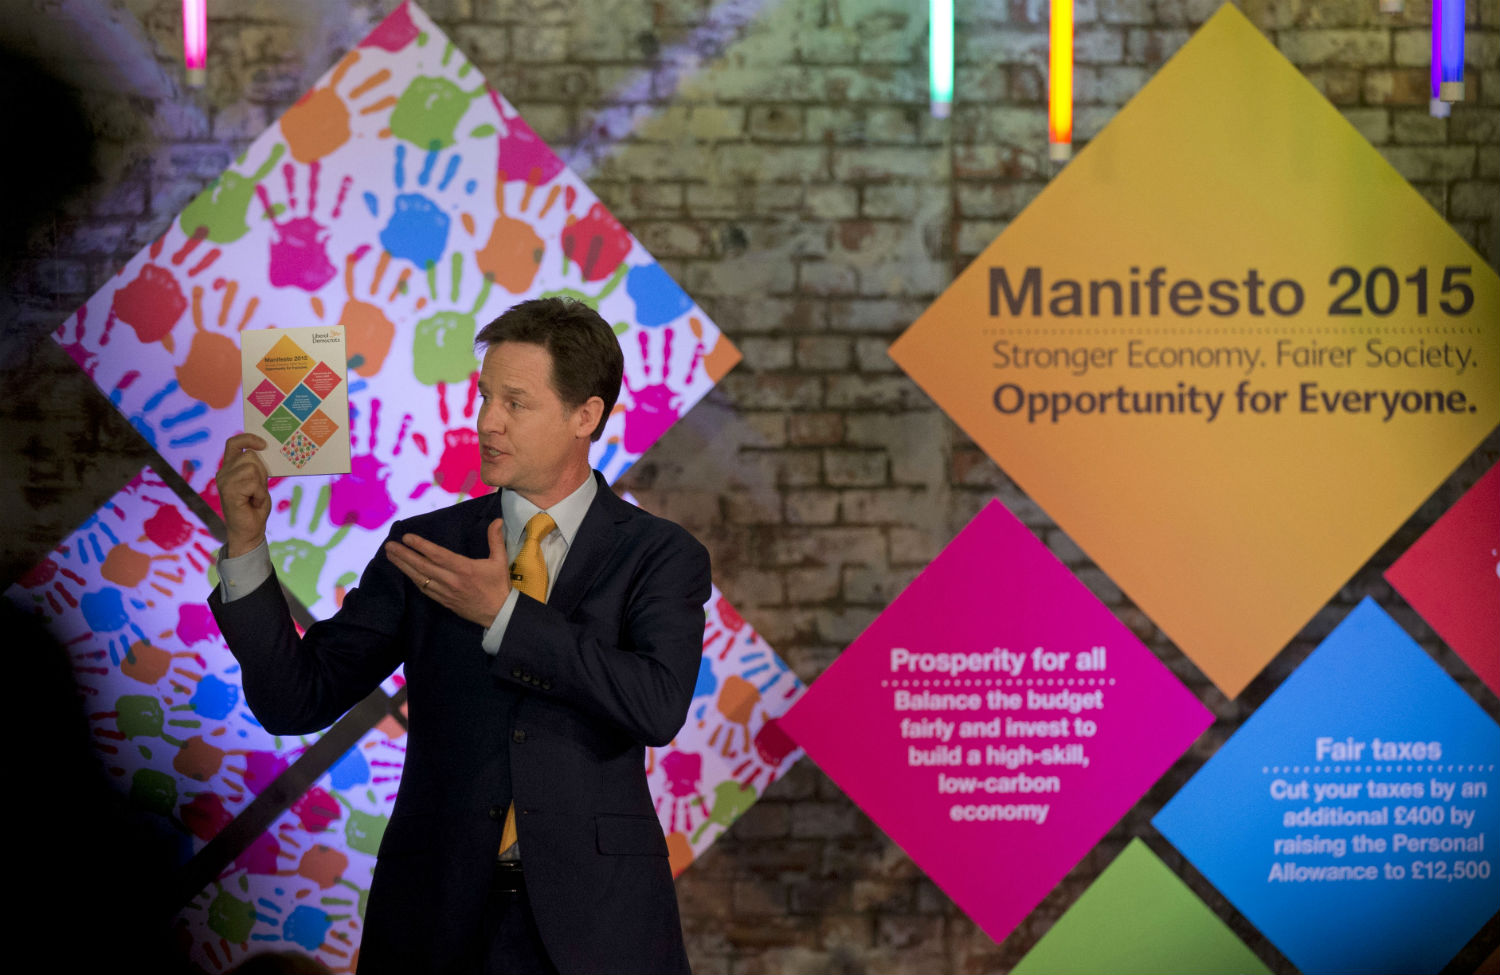 Nick Clegg displays his party manifesto during its launch this week. (AP Photo/Matt Dunham)